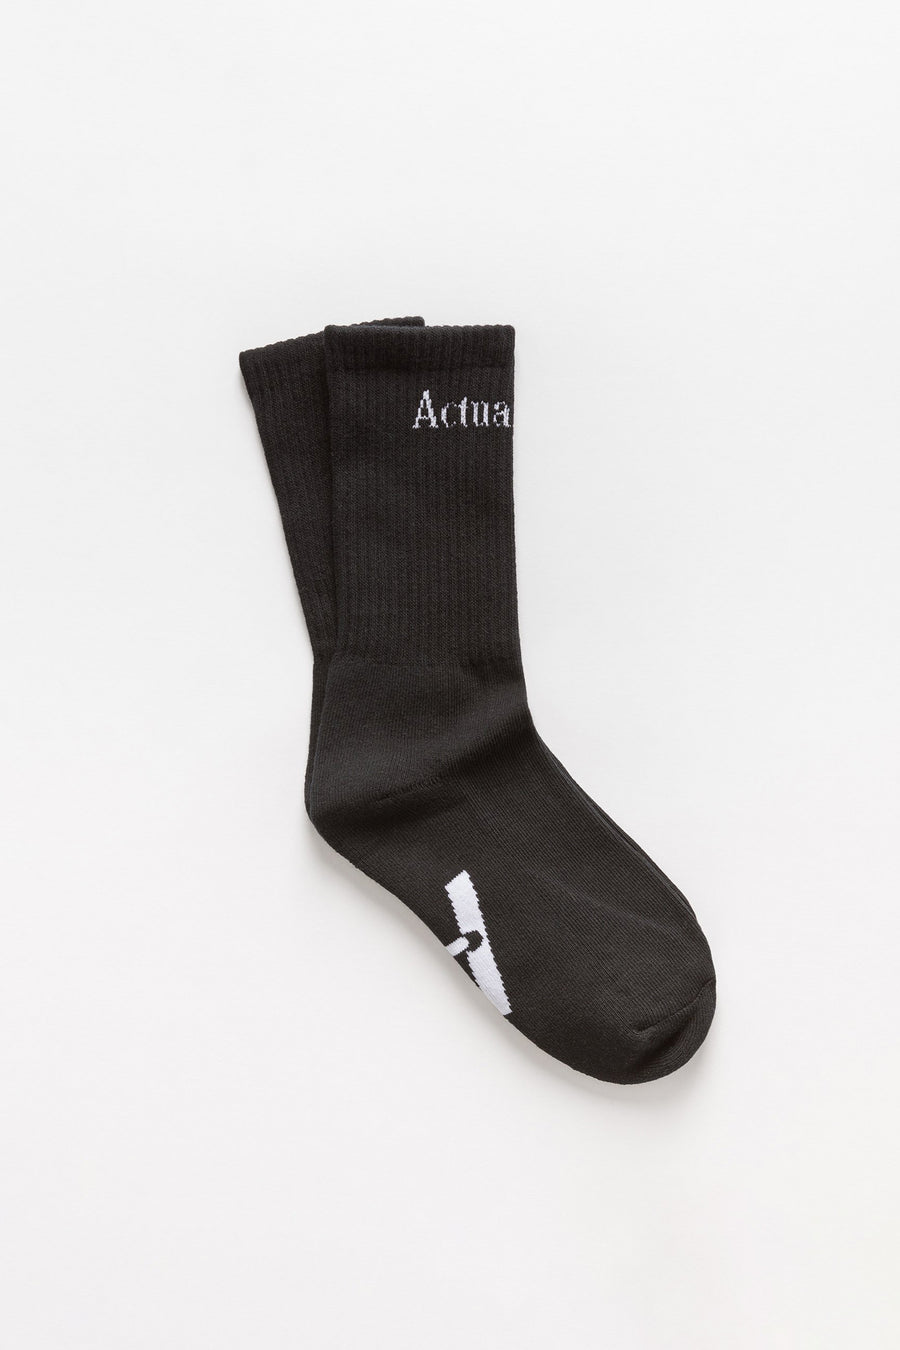 Actual Source Socks in Black - Notre